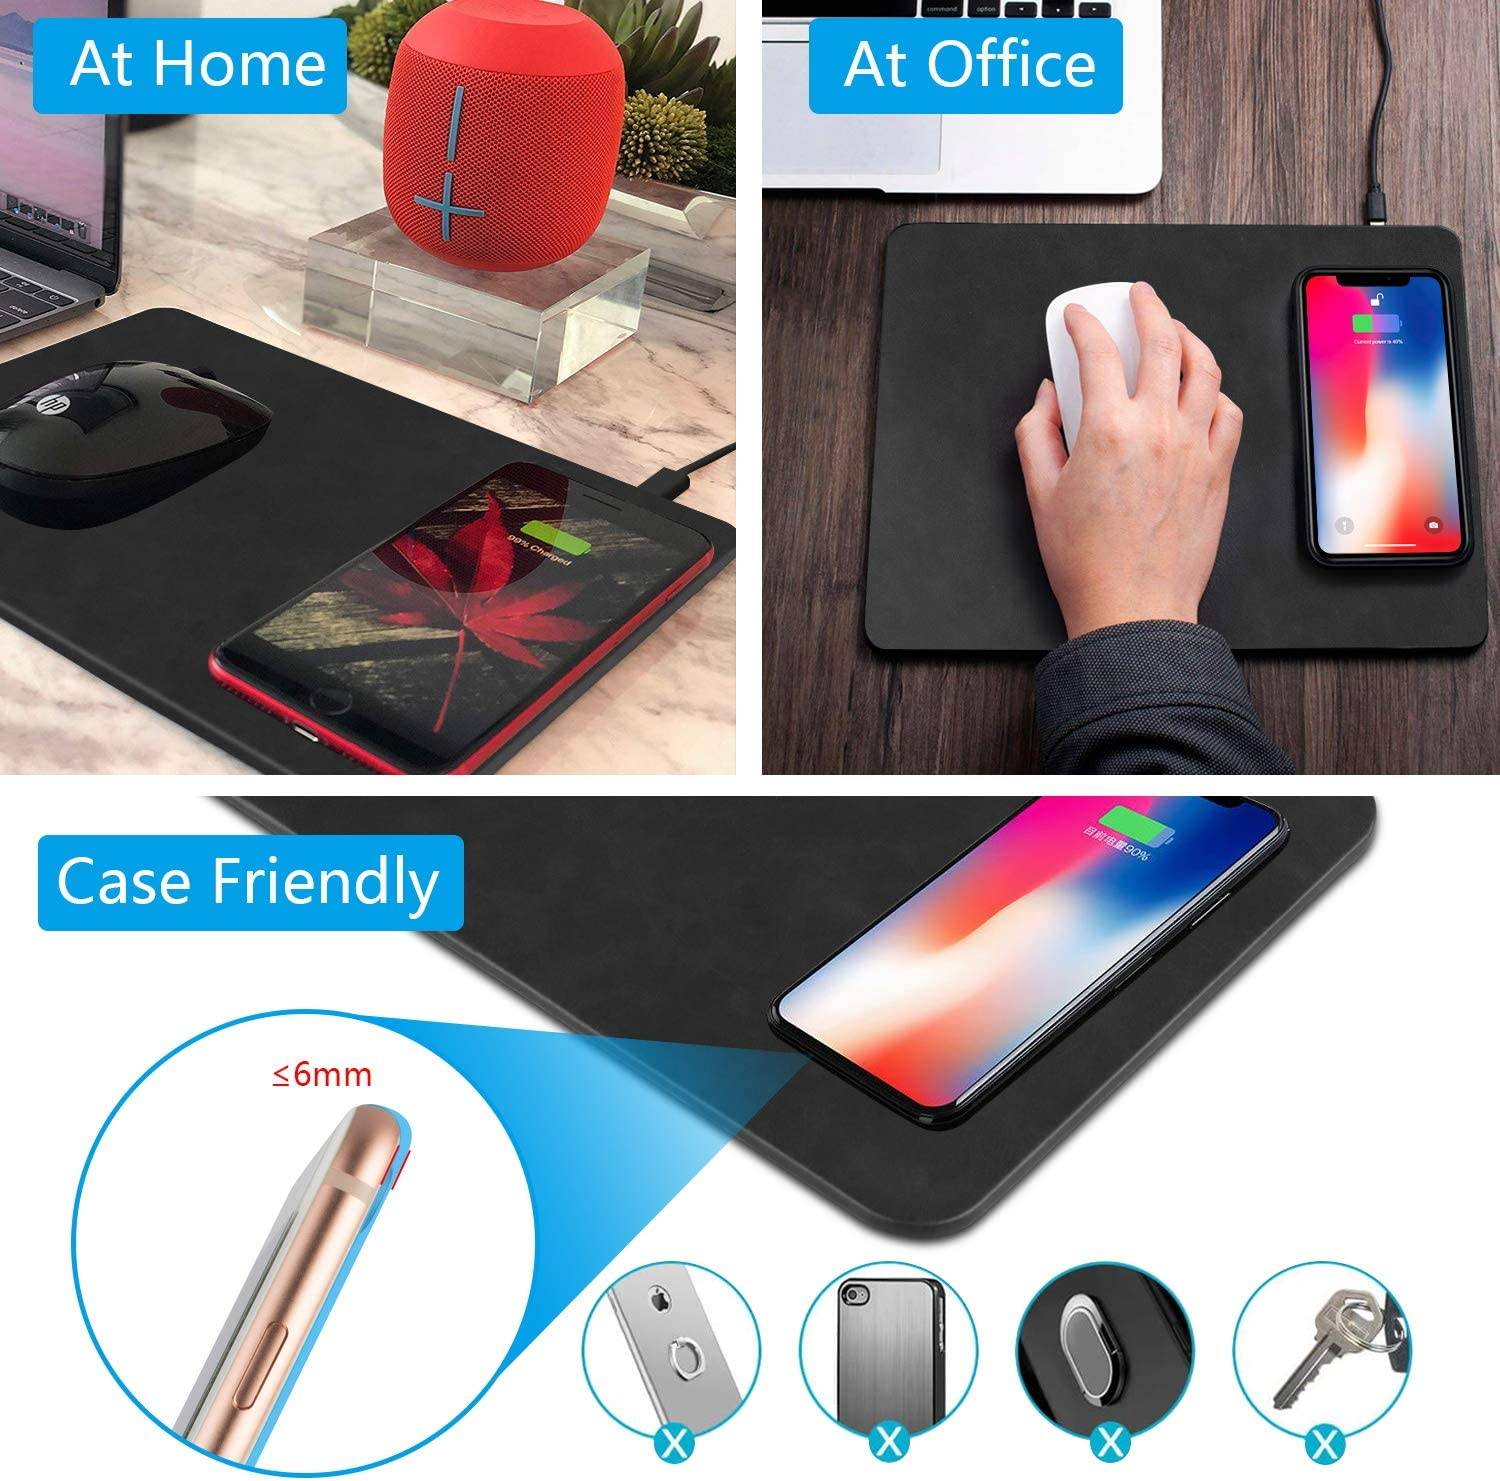 Wireless Charger Mouse Pad Black-1 Fast Wireless Charger,QI Wireless Mouse Pad for Samsung Galaxy S10//S9//S8 Plus Note 9//8 iPhone Xs Max//XR//X//XS//8//8 Plus